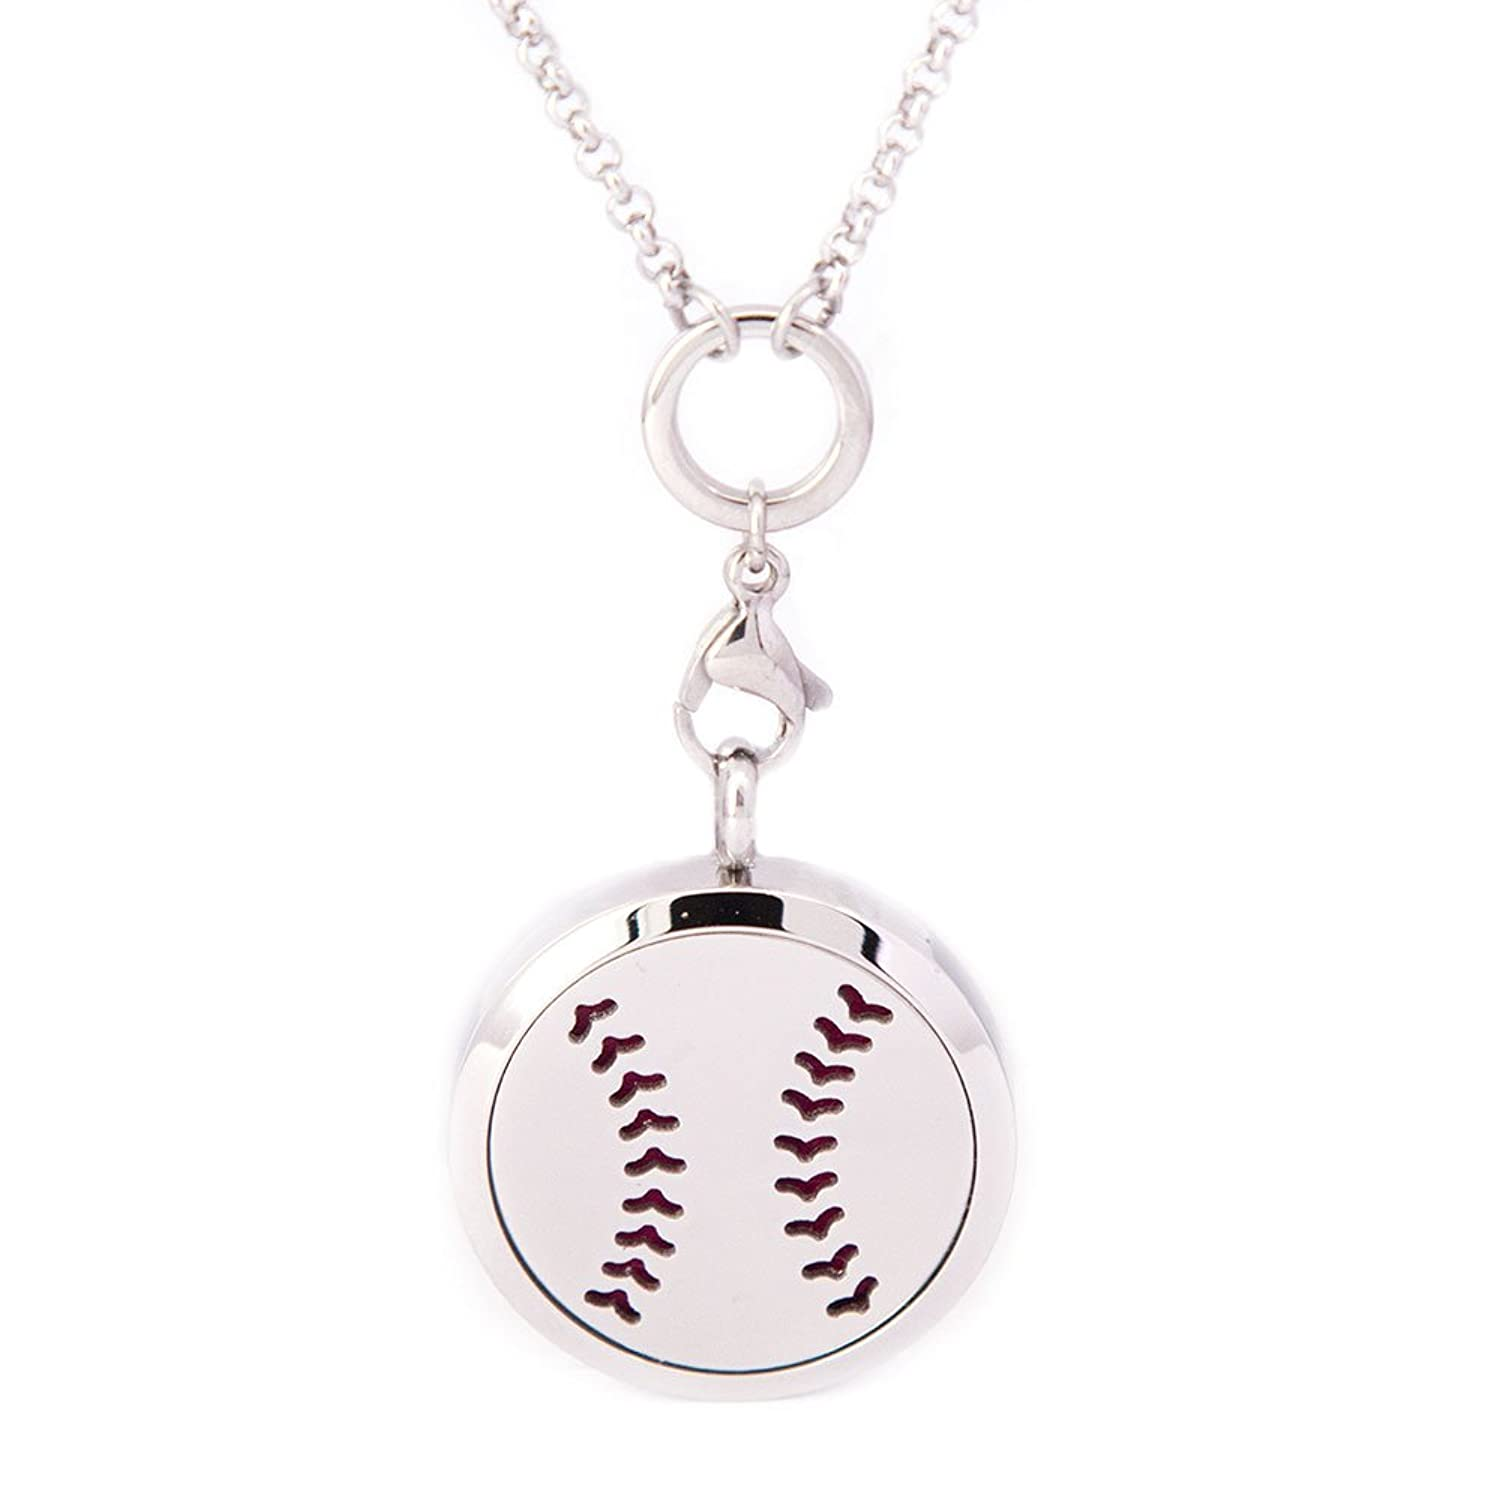 york baseball products anthony mets cmdshine mlb michael pendant spo yellow gold new